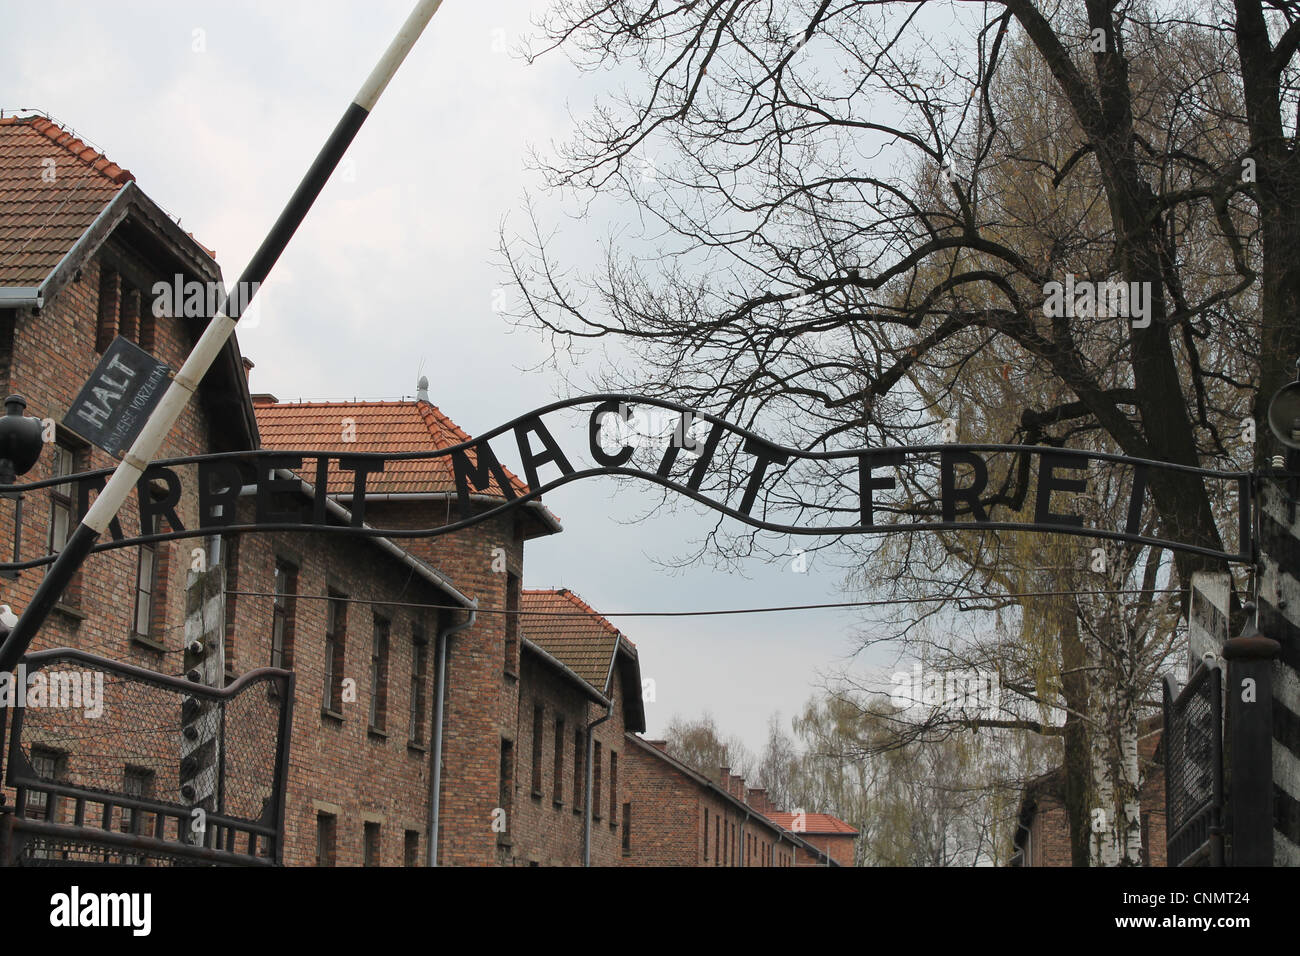 Arbeit Macht Frei is displayed over the entrance to Auschwitz Camp in Poland. - Stock Image